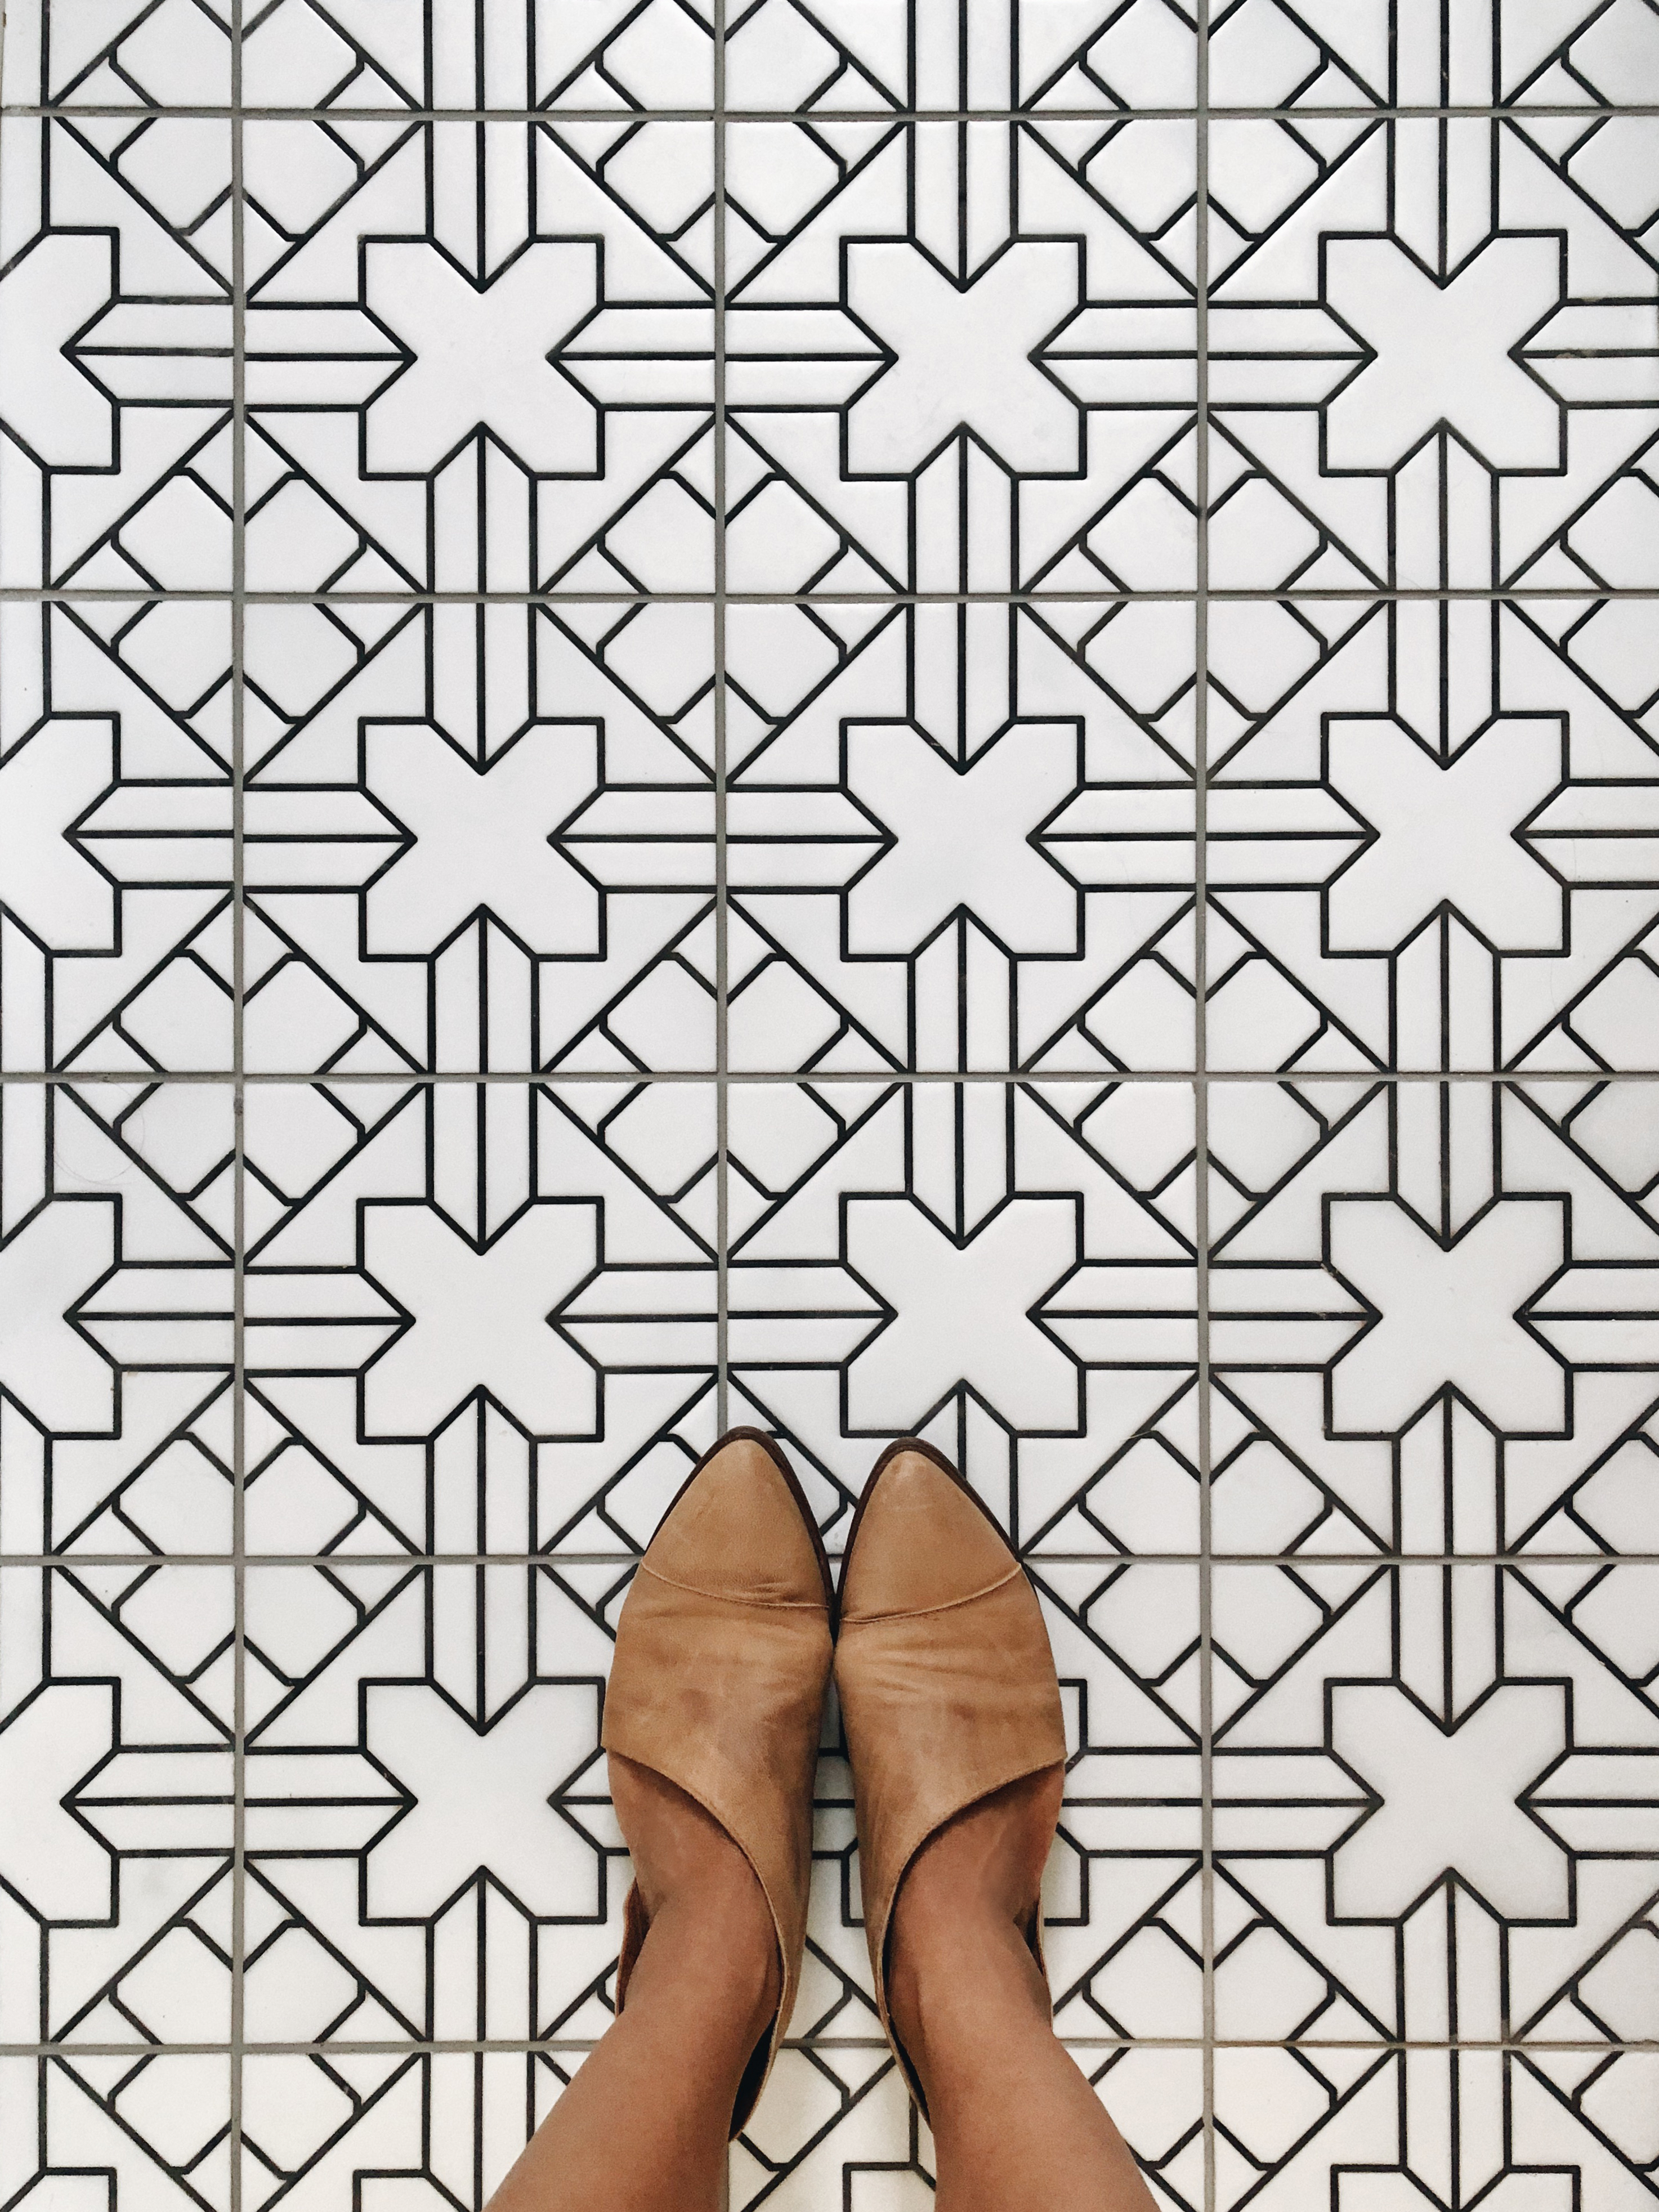 2018_Q4_image_hi_res_full-rights_influencer_Patty-Wagner_bathroom_floor_handpainted_tile_kasbah_neutral_motif_with_feet_detail_FC-232655.jpg?mtime=20181023093048#asset:422733